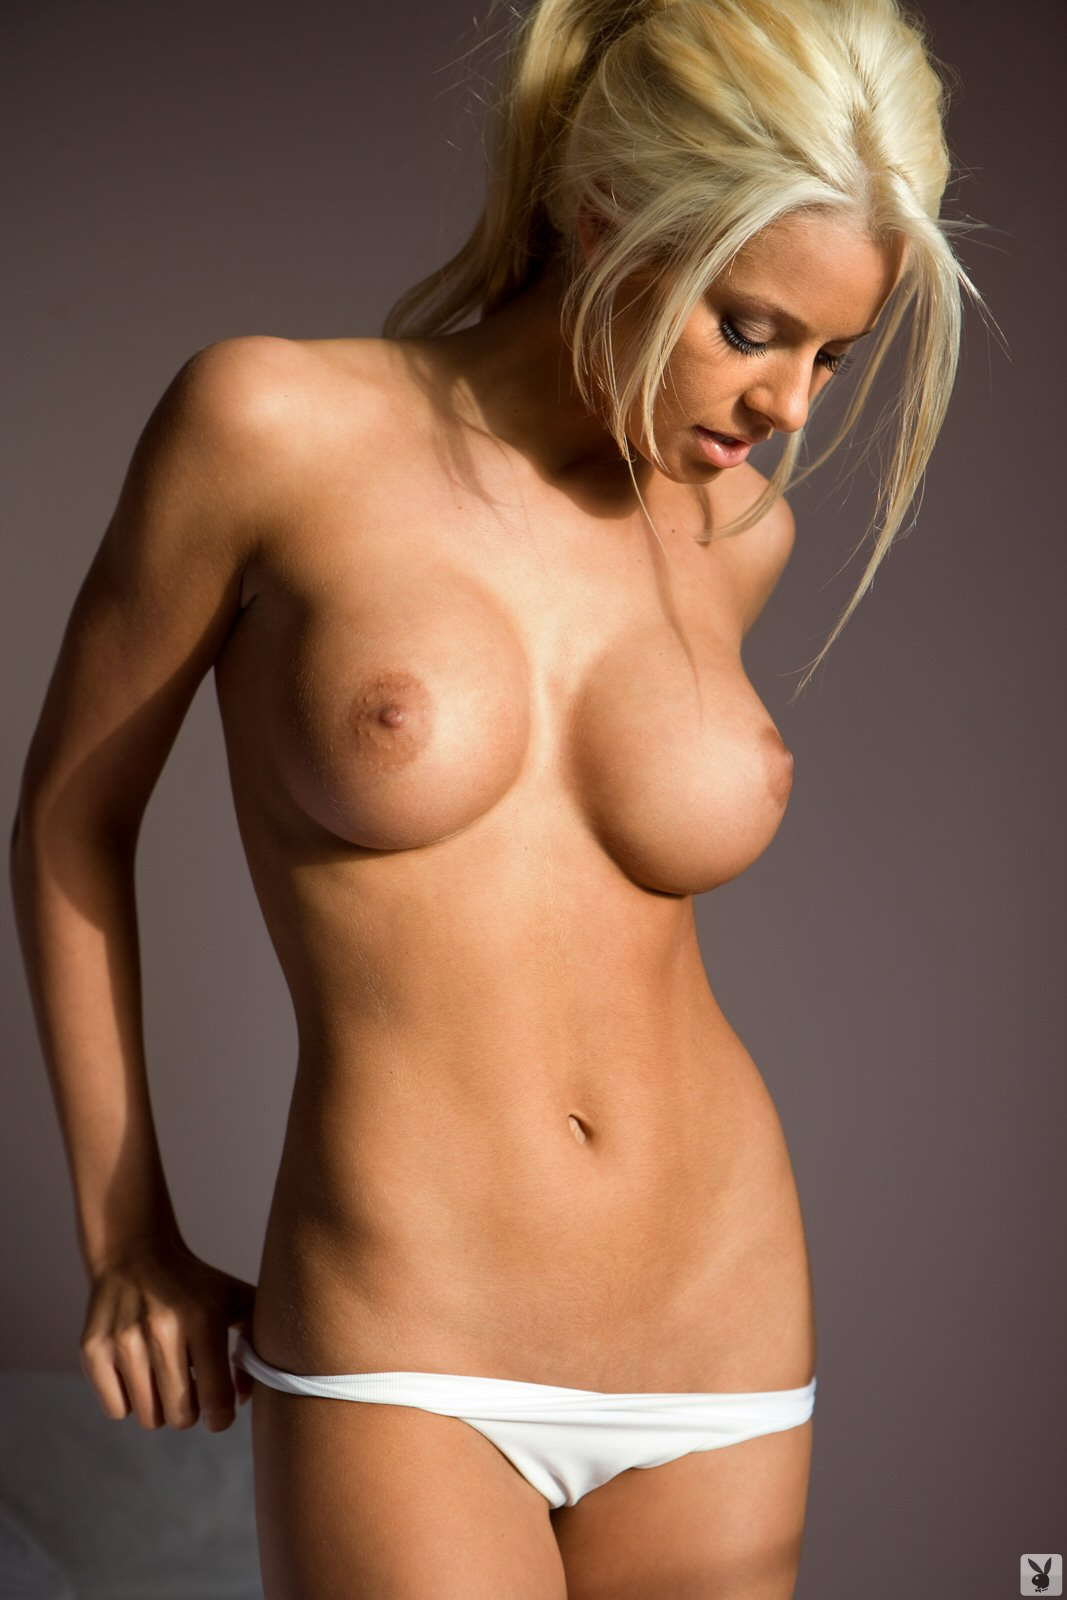 Are not Girl losing her clothes good piece